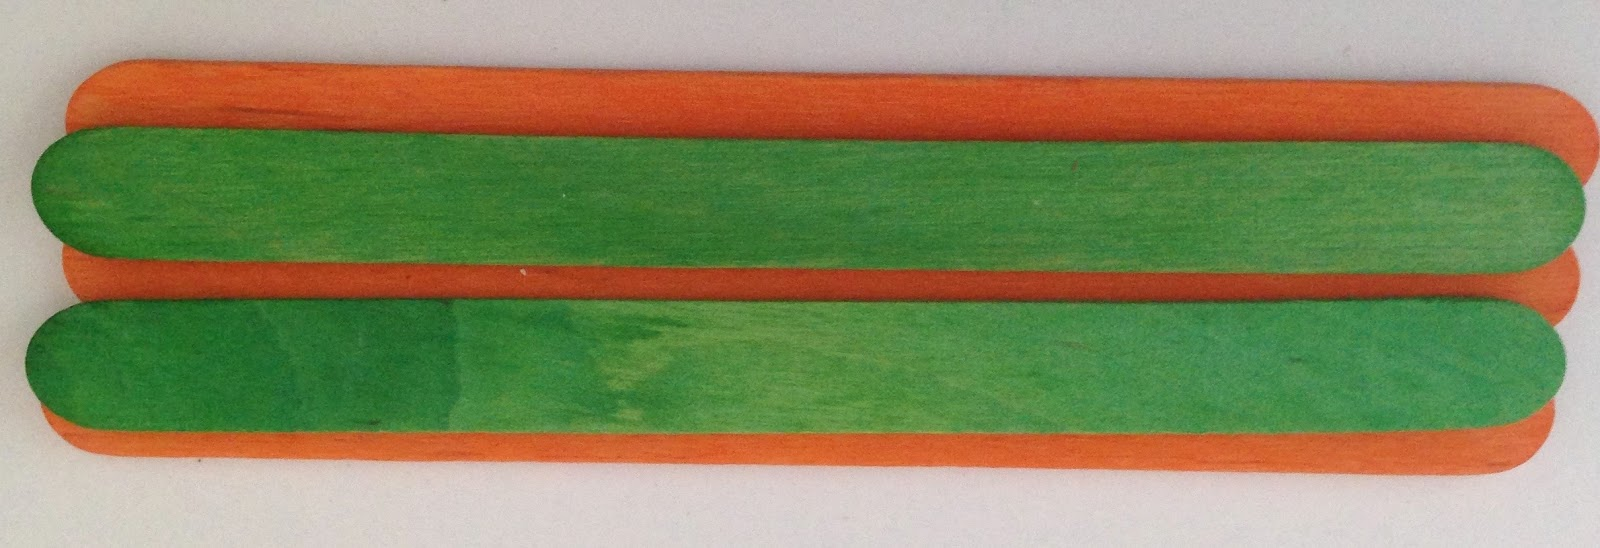 adding green color sticks on orange stick